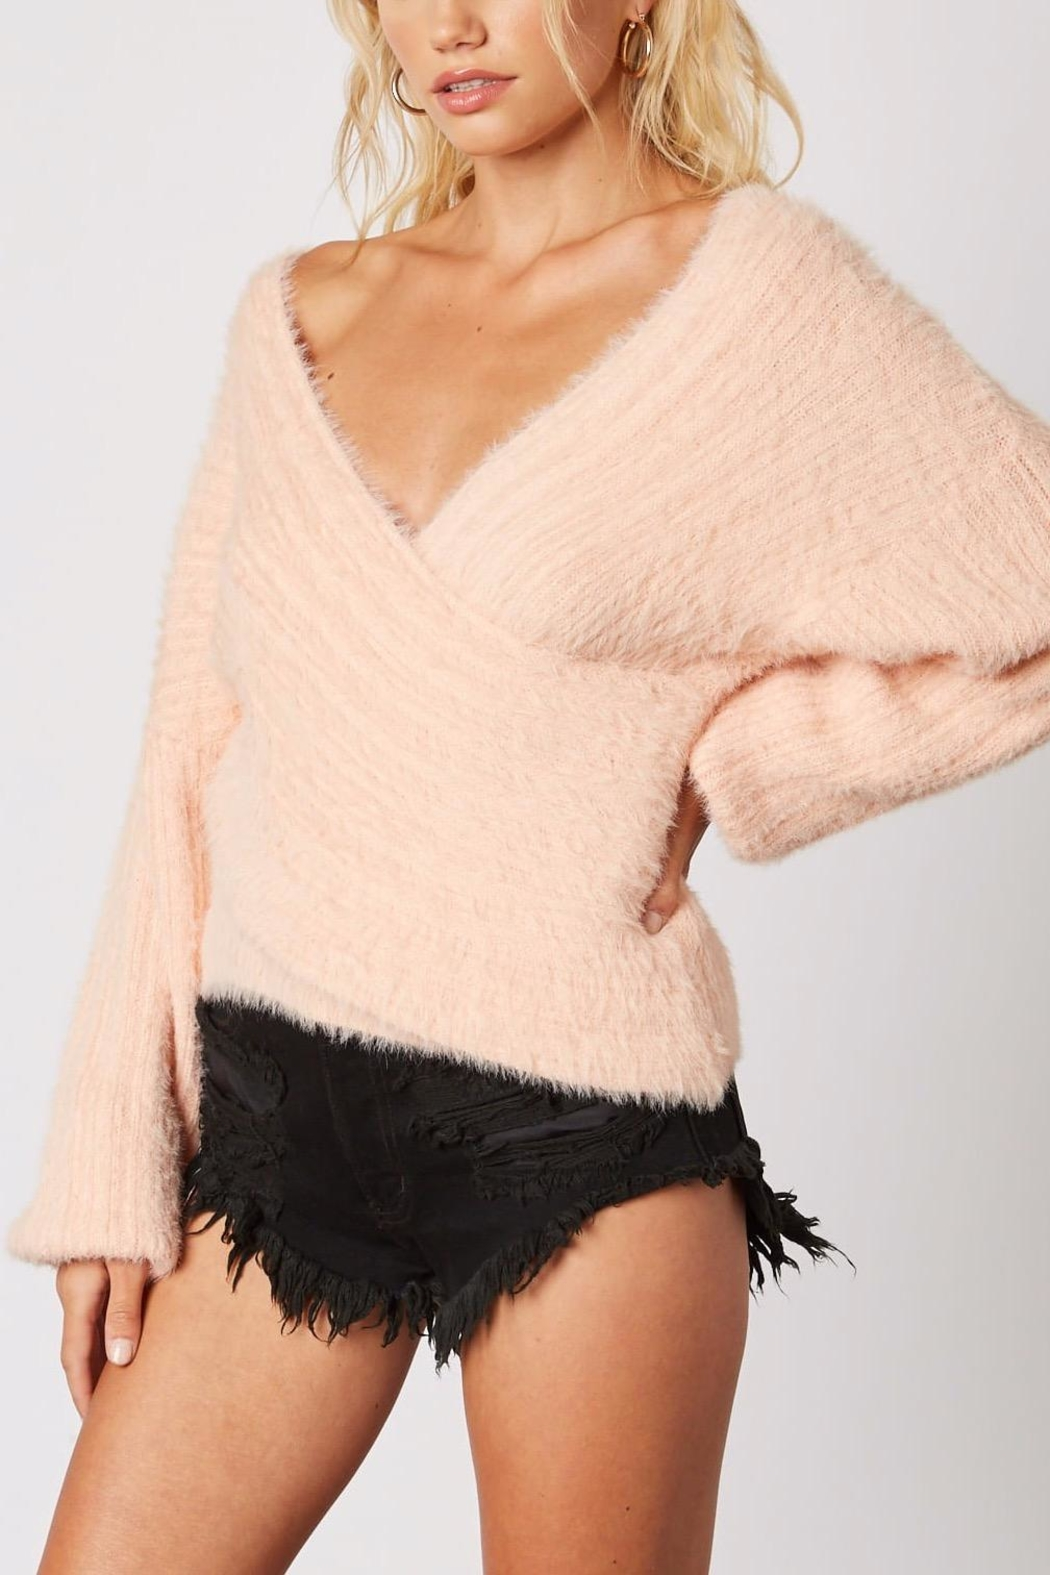 Cotton Candy LA Plunging-Loose Peach Sweater - Front Full Image